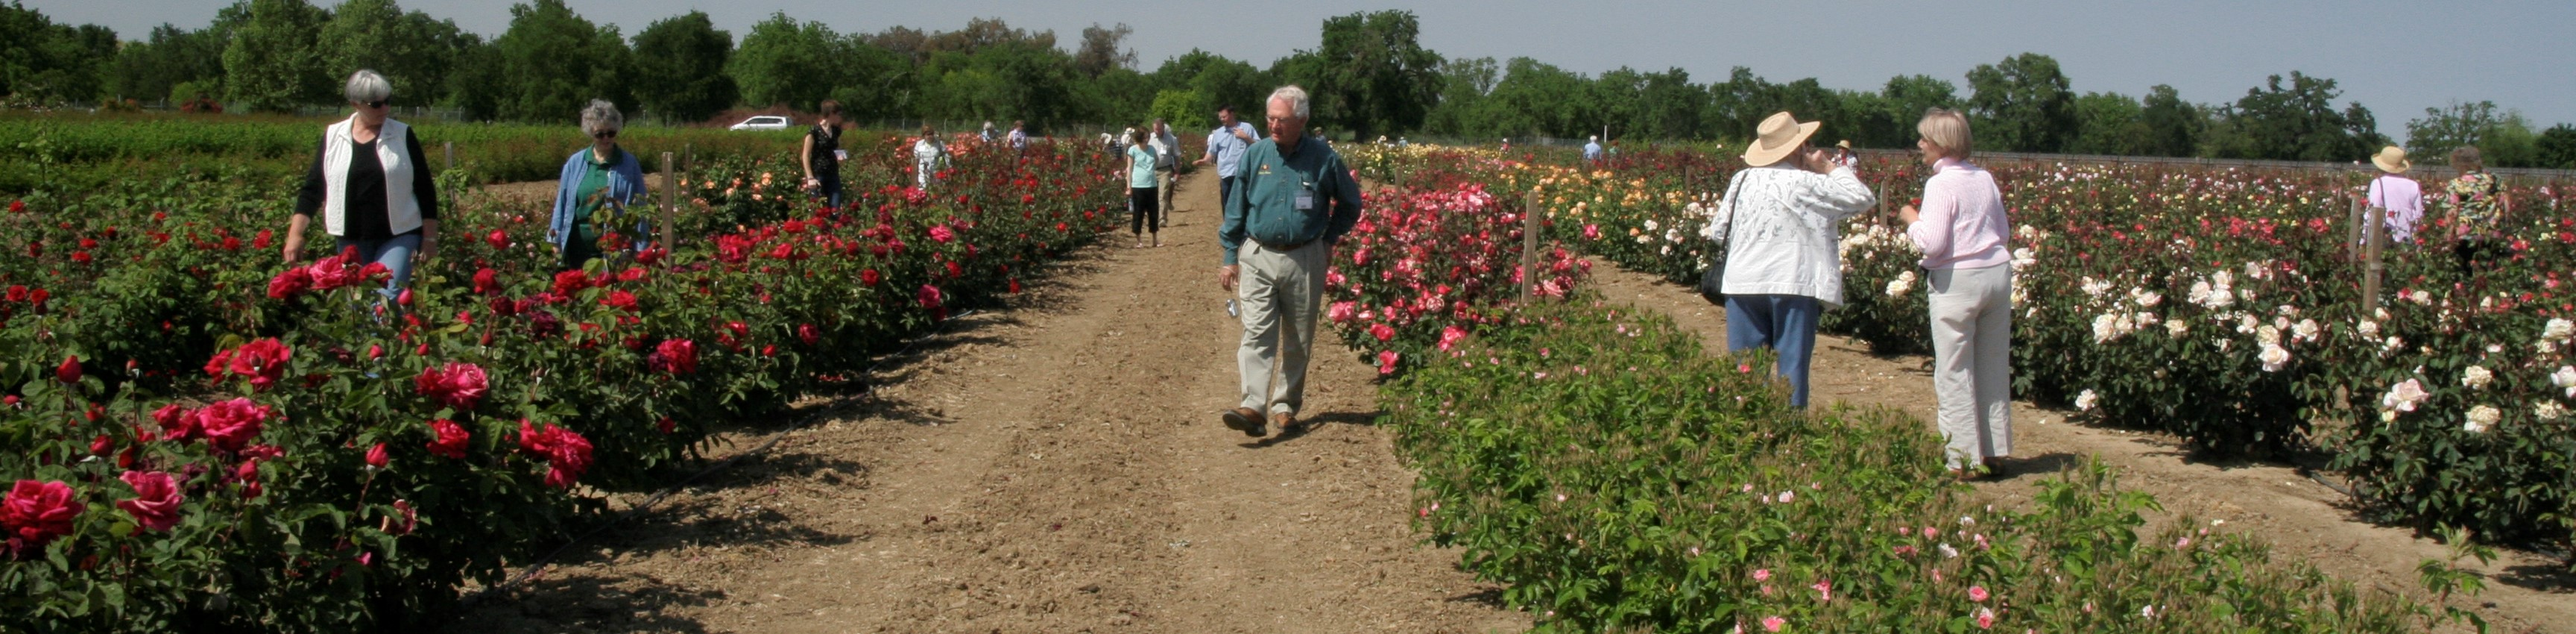 Rose Days | California Center for Urban Horticulture